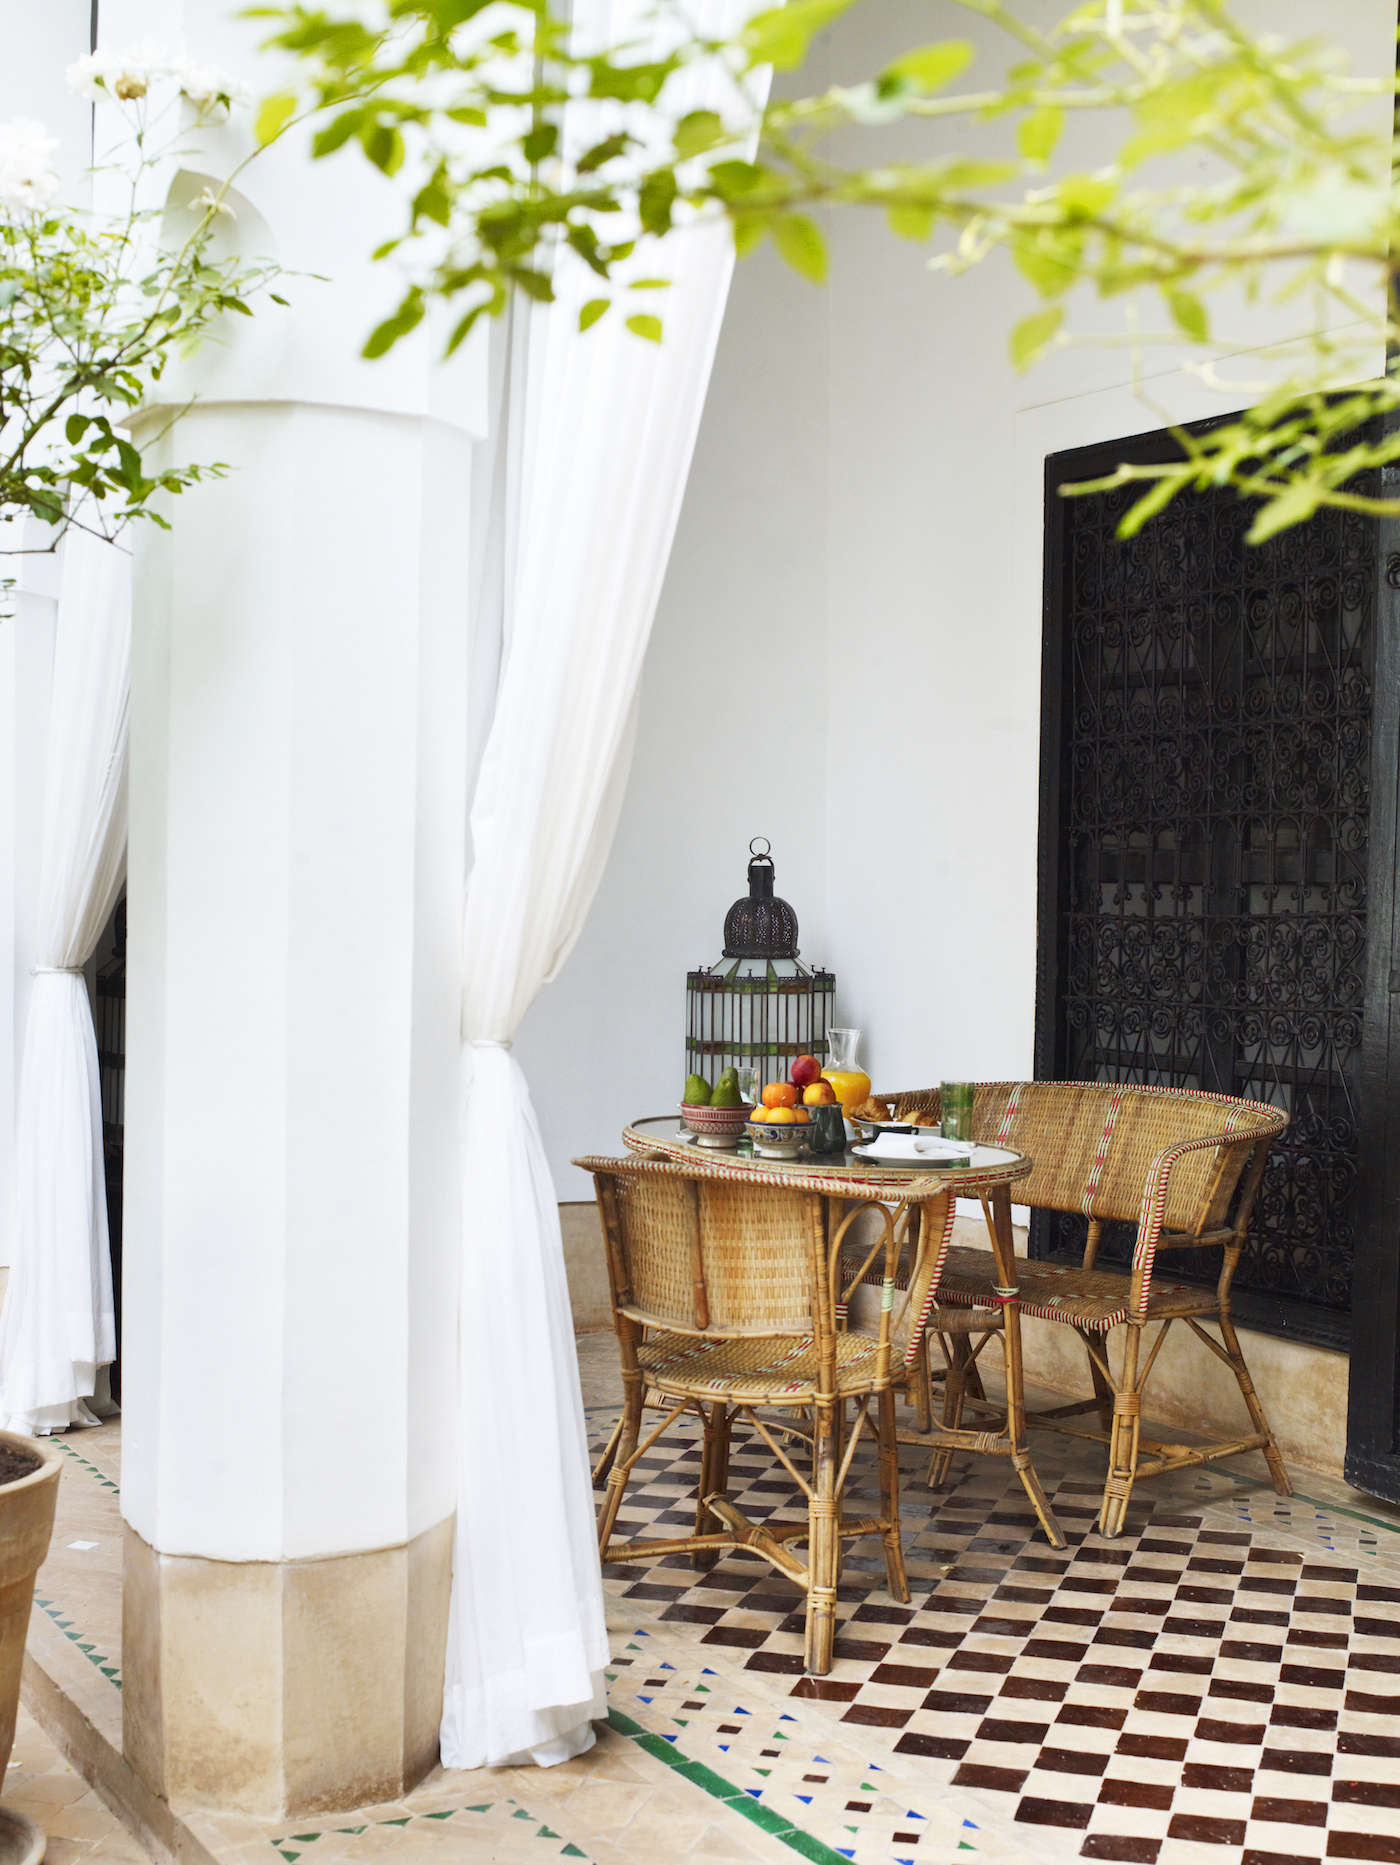 outdoor-dining-patio-wicker-chairs-lantern-tile-floors